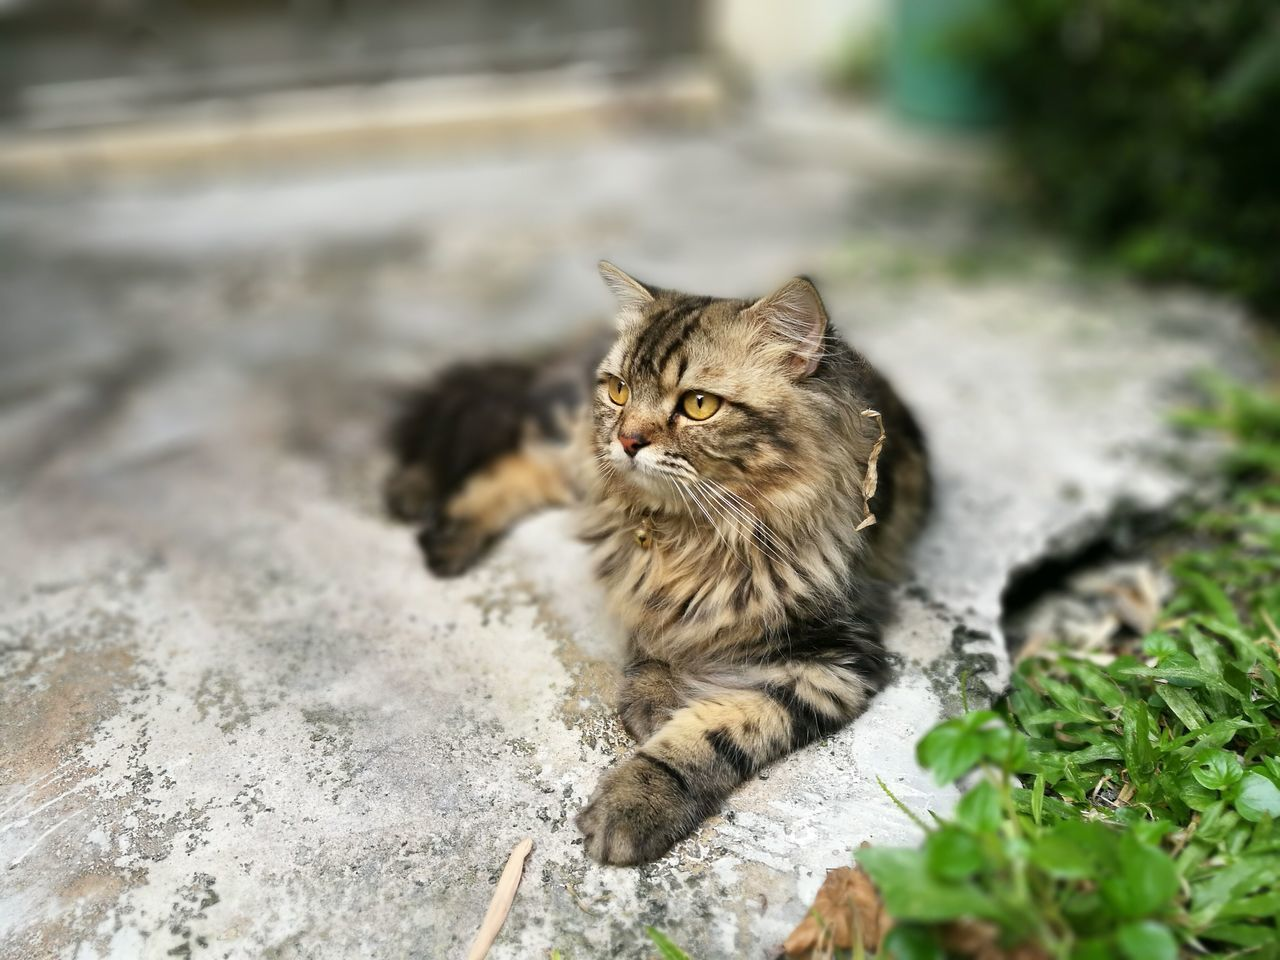 Domestic Cat Pets Looking At Camera Domestic Animals Feline Portrait Animal One Animal Mammal Tabby Cat No People Outdoors Day Leopard Cat Brown Sit Persian Cat